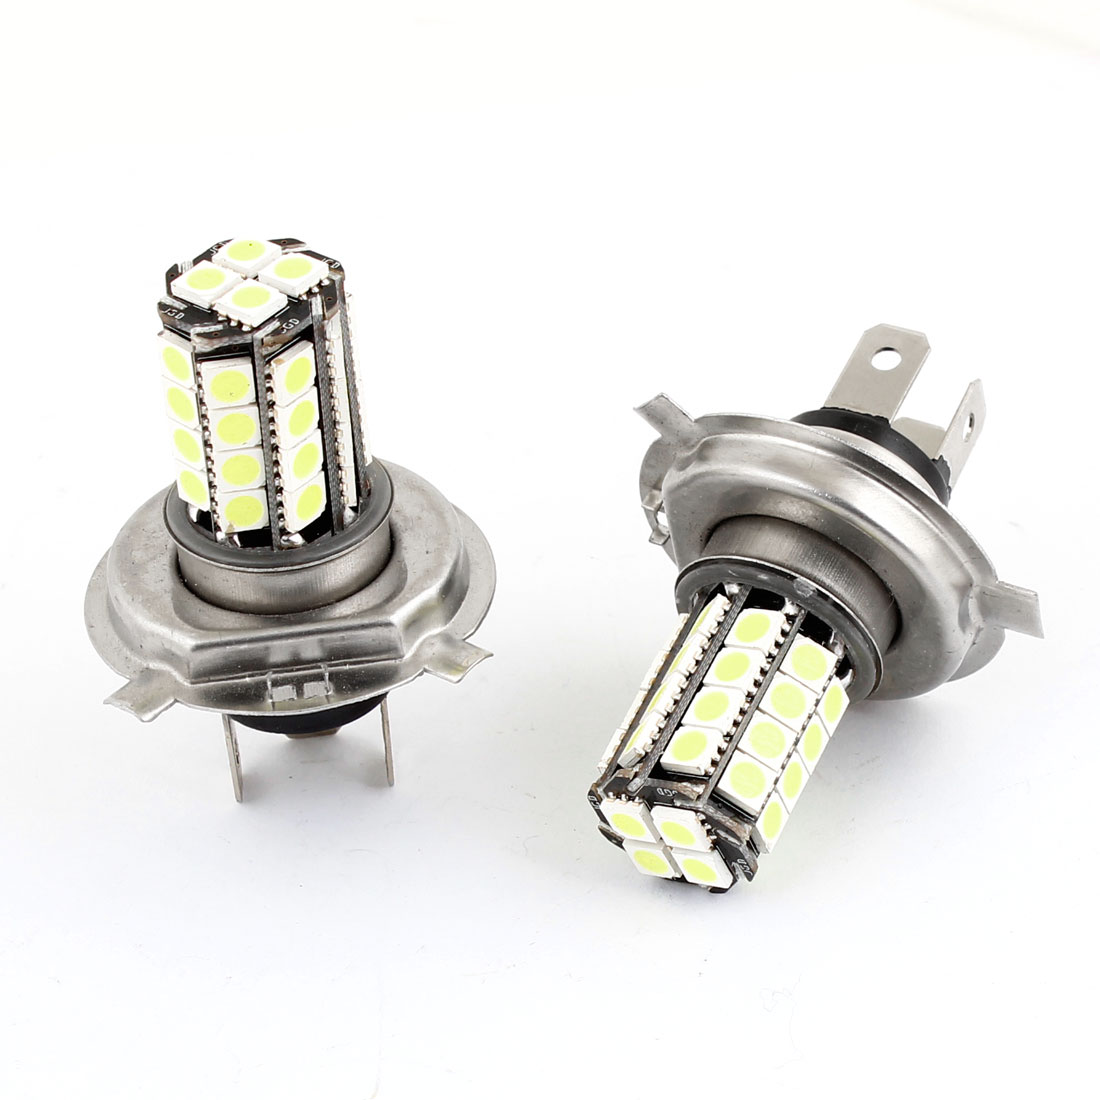 2PCS 5050 SMD 36 LED H4 White Automobile Car Foglight Driving Parking Light Lamp